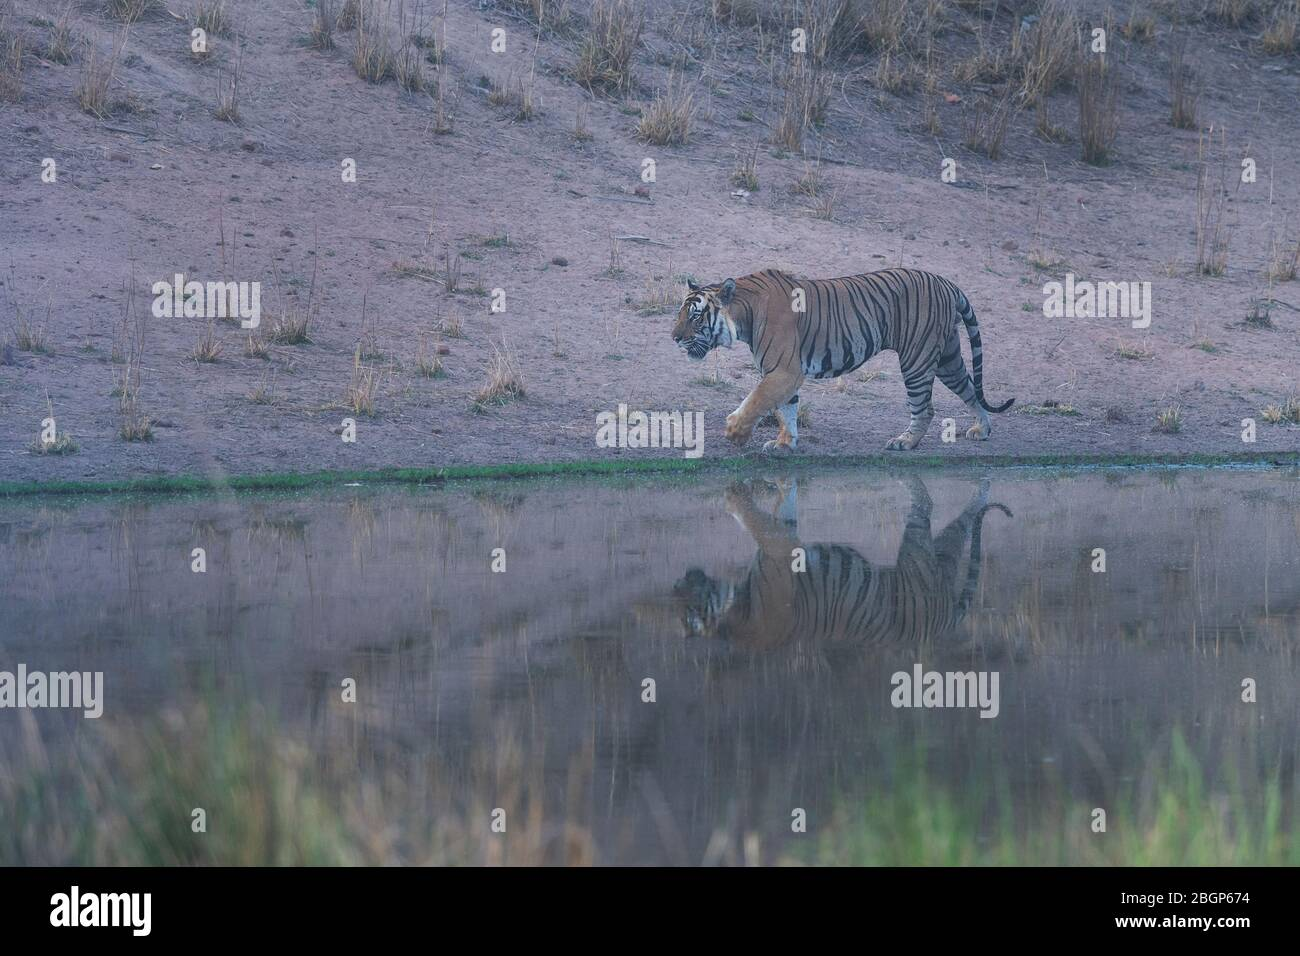 Tiger Roaming Stockfotos Und Bilder Kaufen Alamy